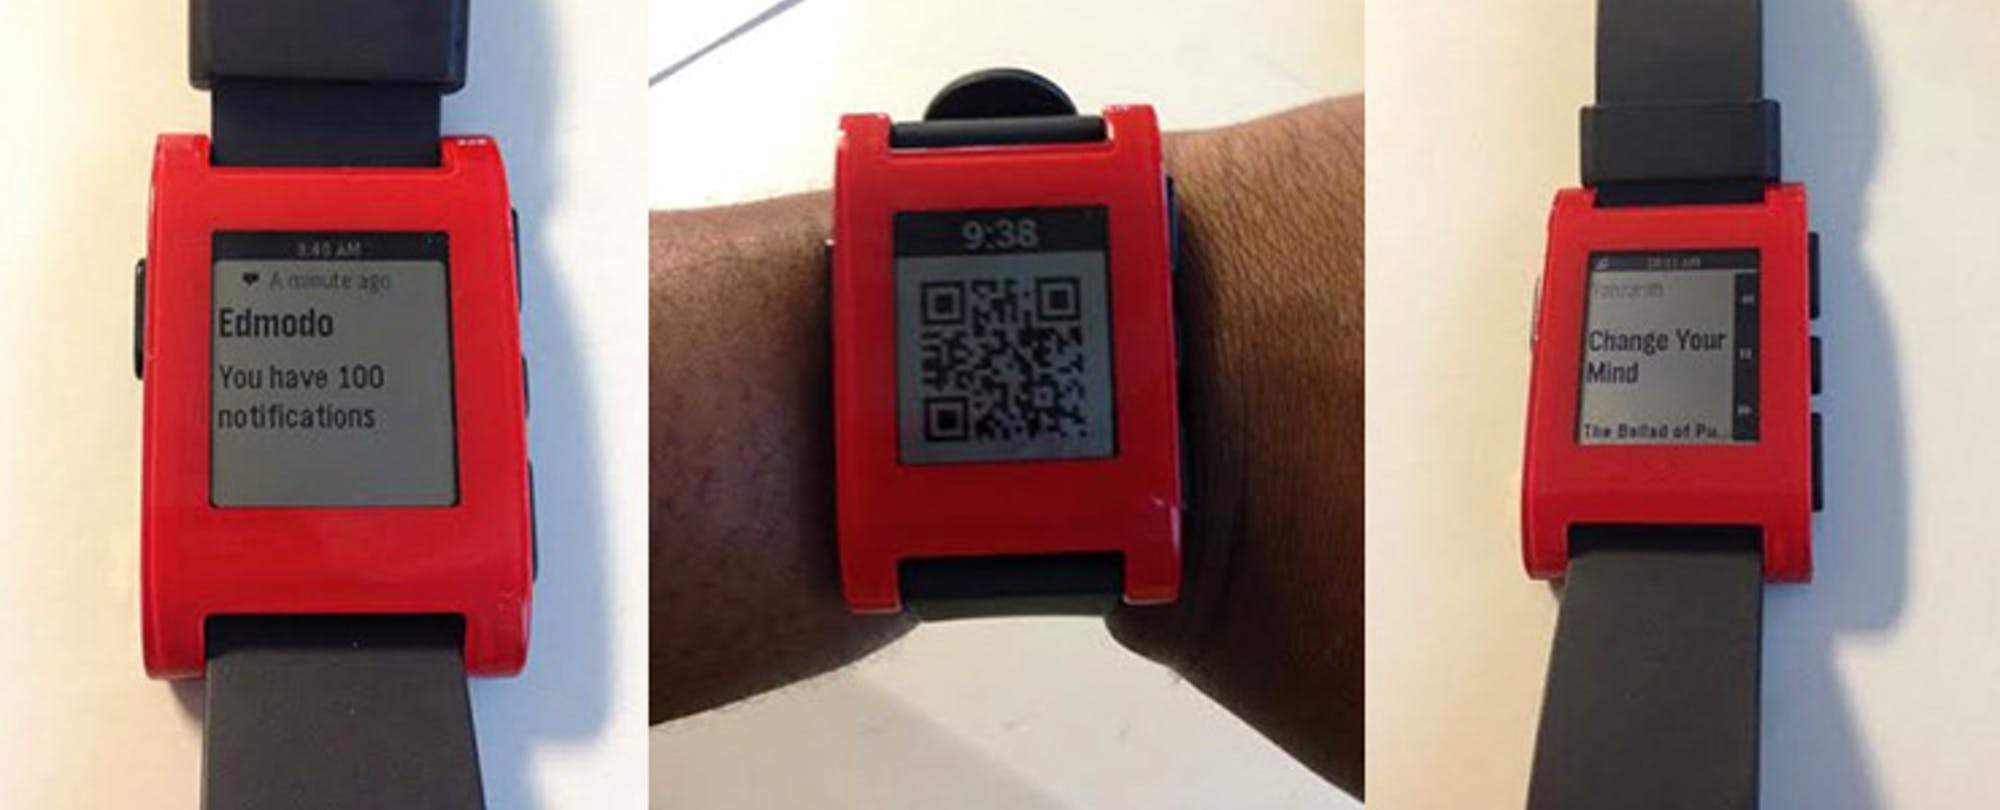 Managing Your Digital Classroom with Wearable Technology